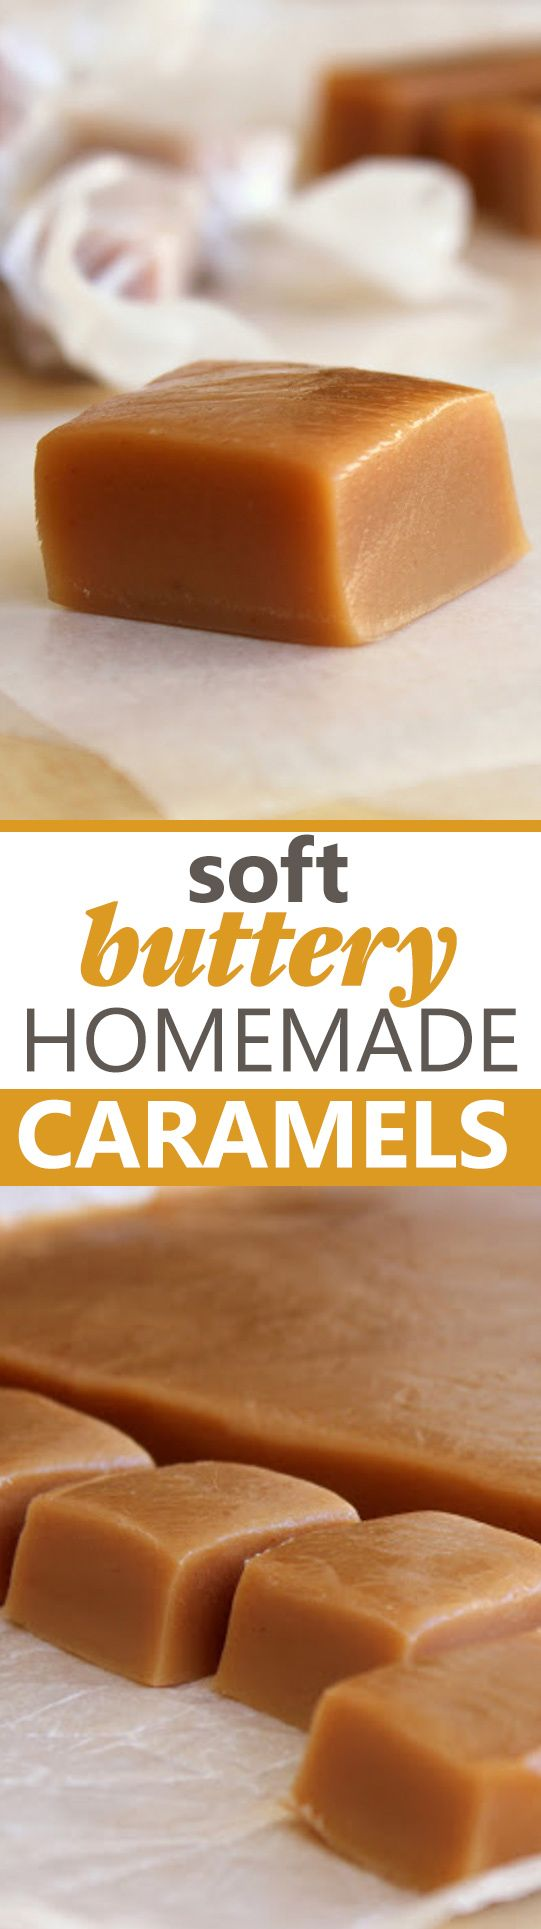 Soft, Buttery Homemade Caramels! A tried and true recipe you'll want to make every Christmas.